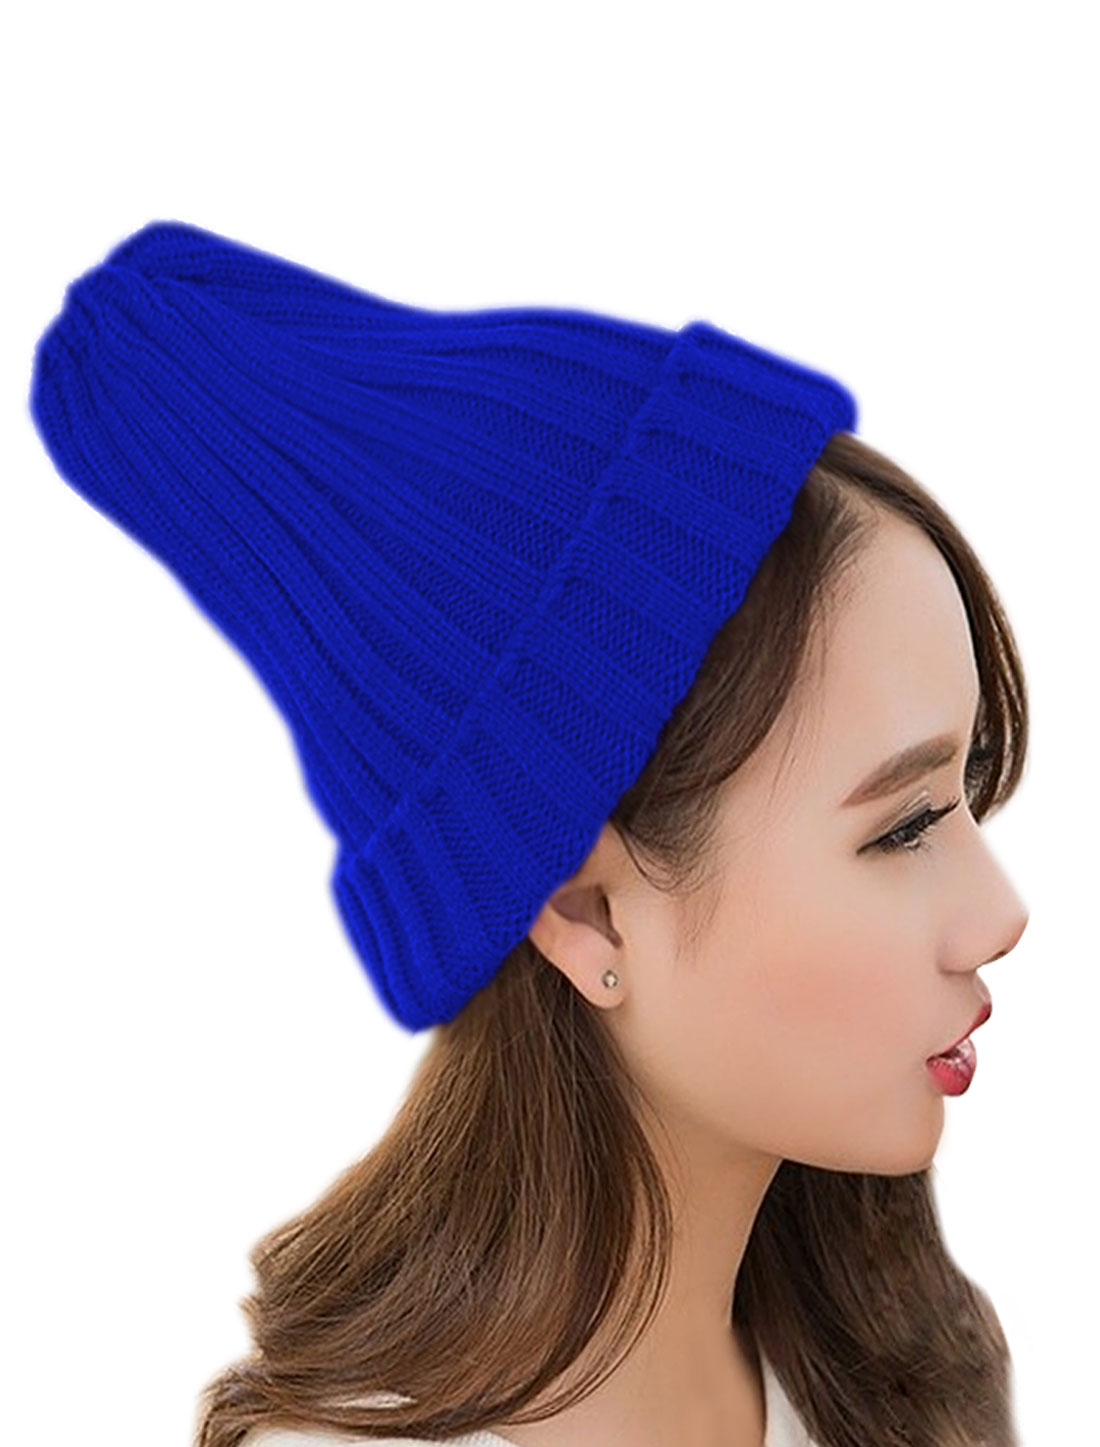 Unisex Stretch Ribbed Knitted Chunky Slouchy Leisure Beanie Cap Blue